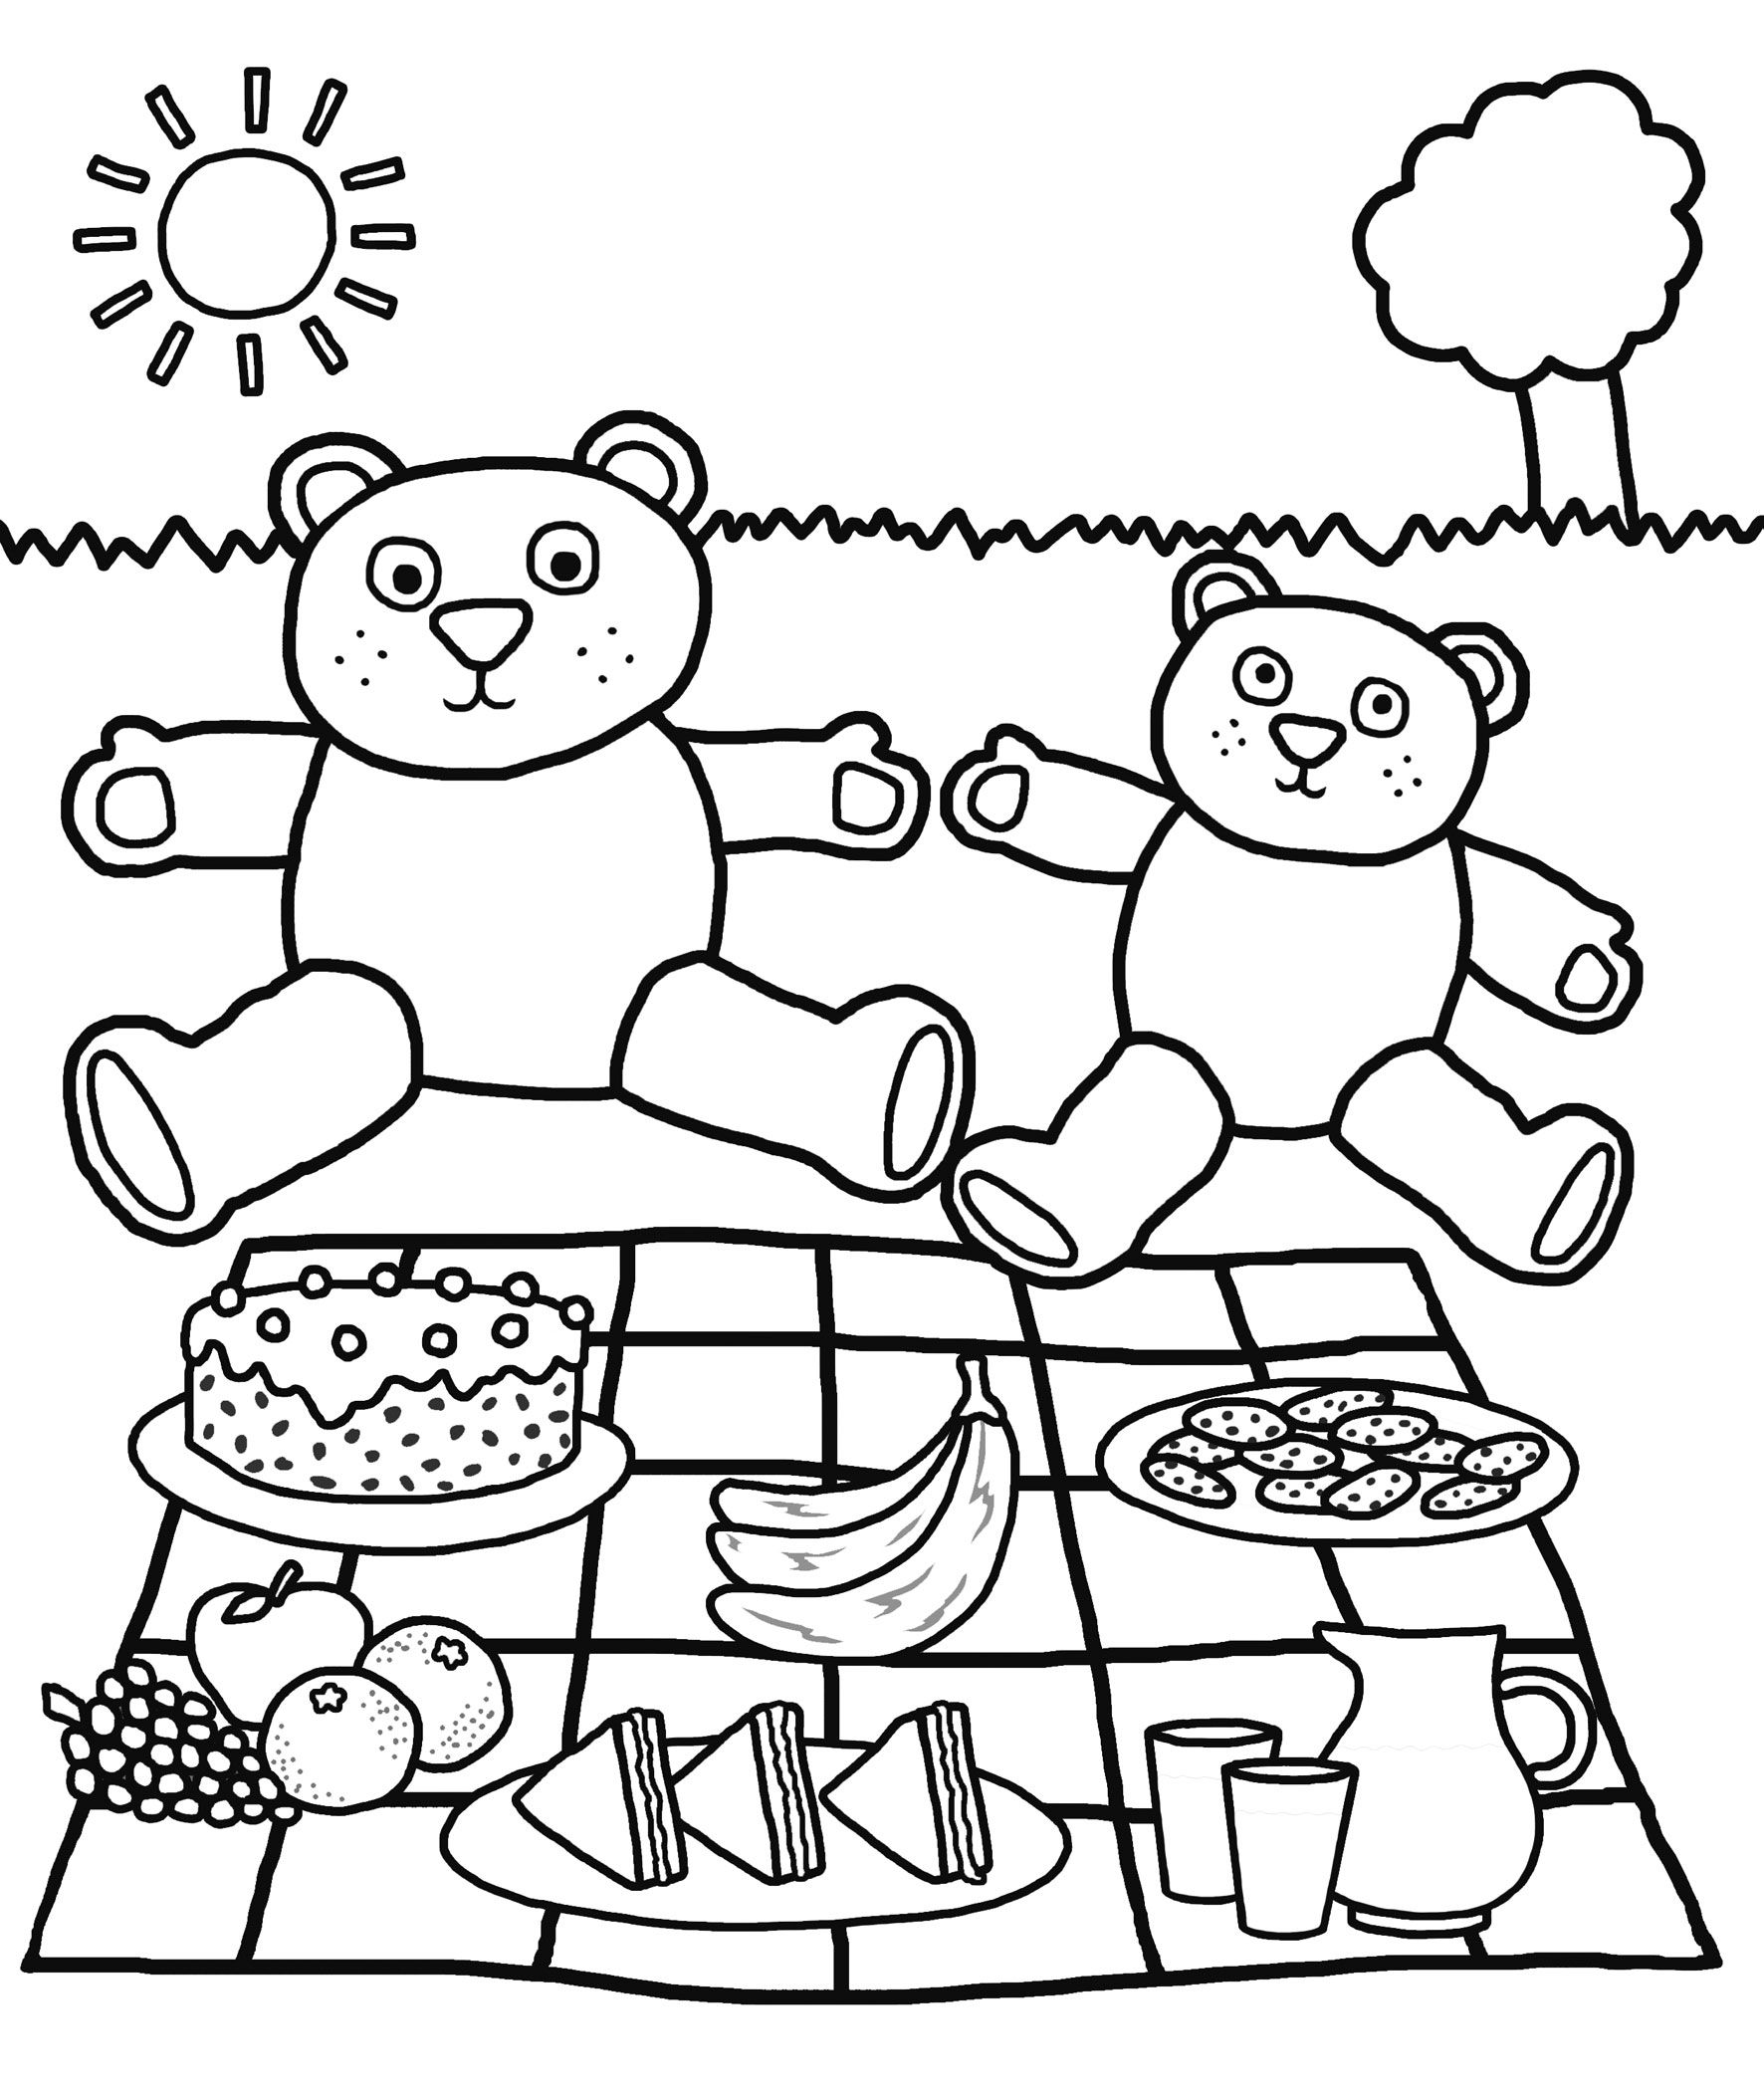 July 10 Is National Teddy Bear Picnic Day Enjoy This Fun Teddy Bear Picnic Color Page